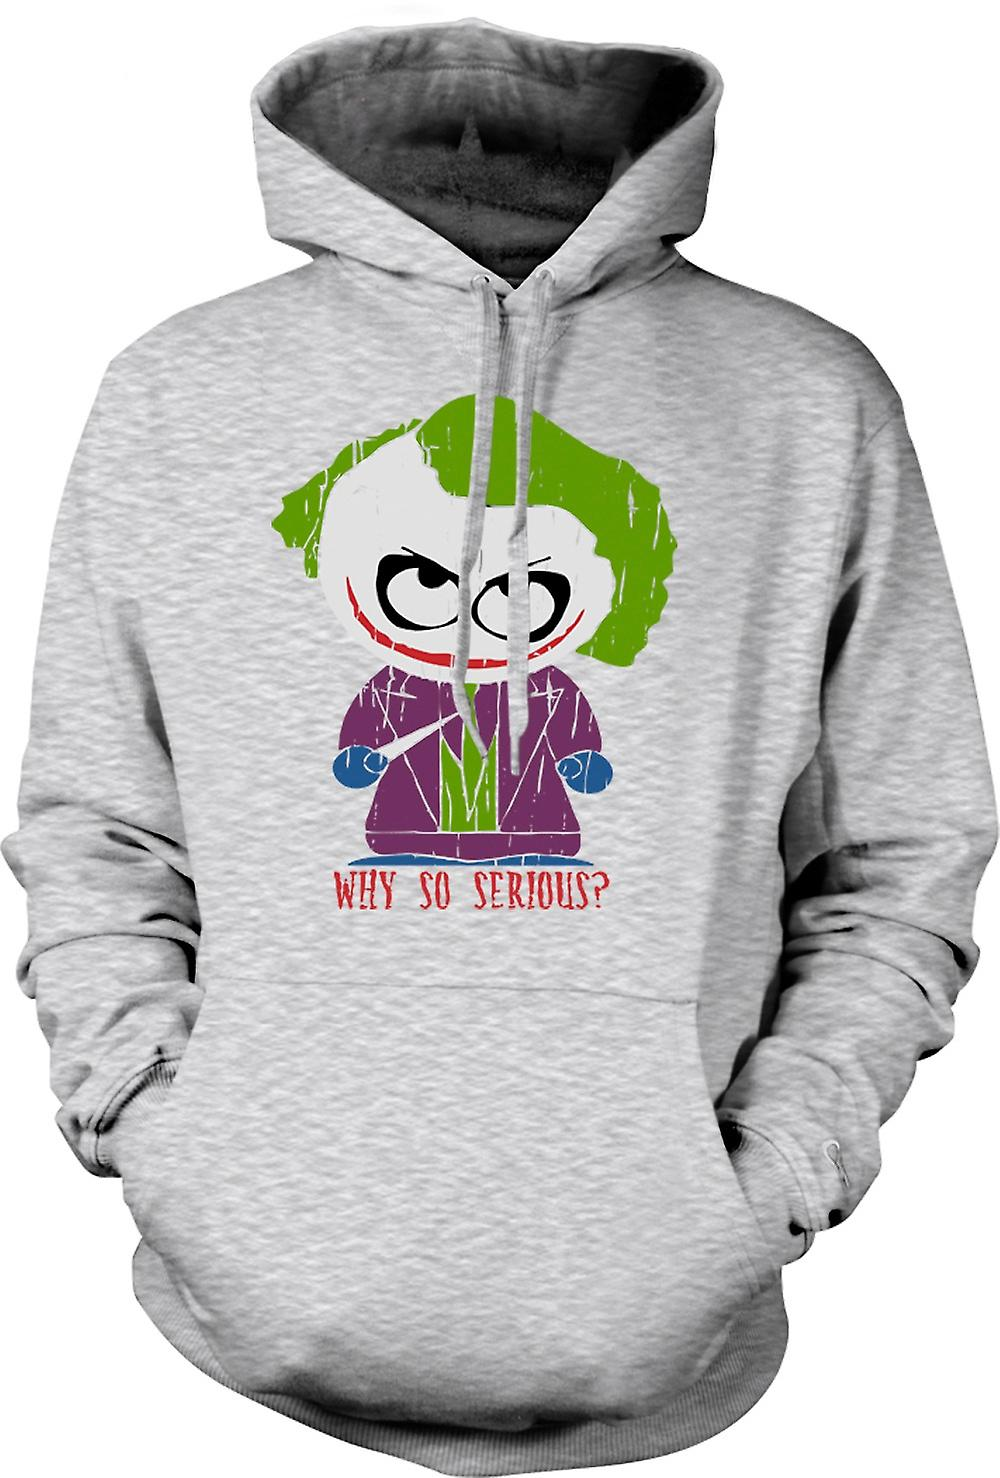 Mens Hoodie - carina Joker - Why So Serious